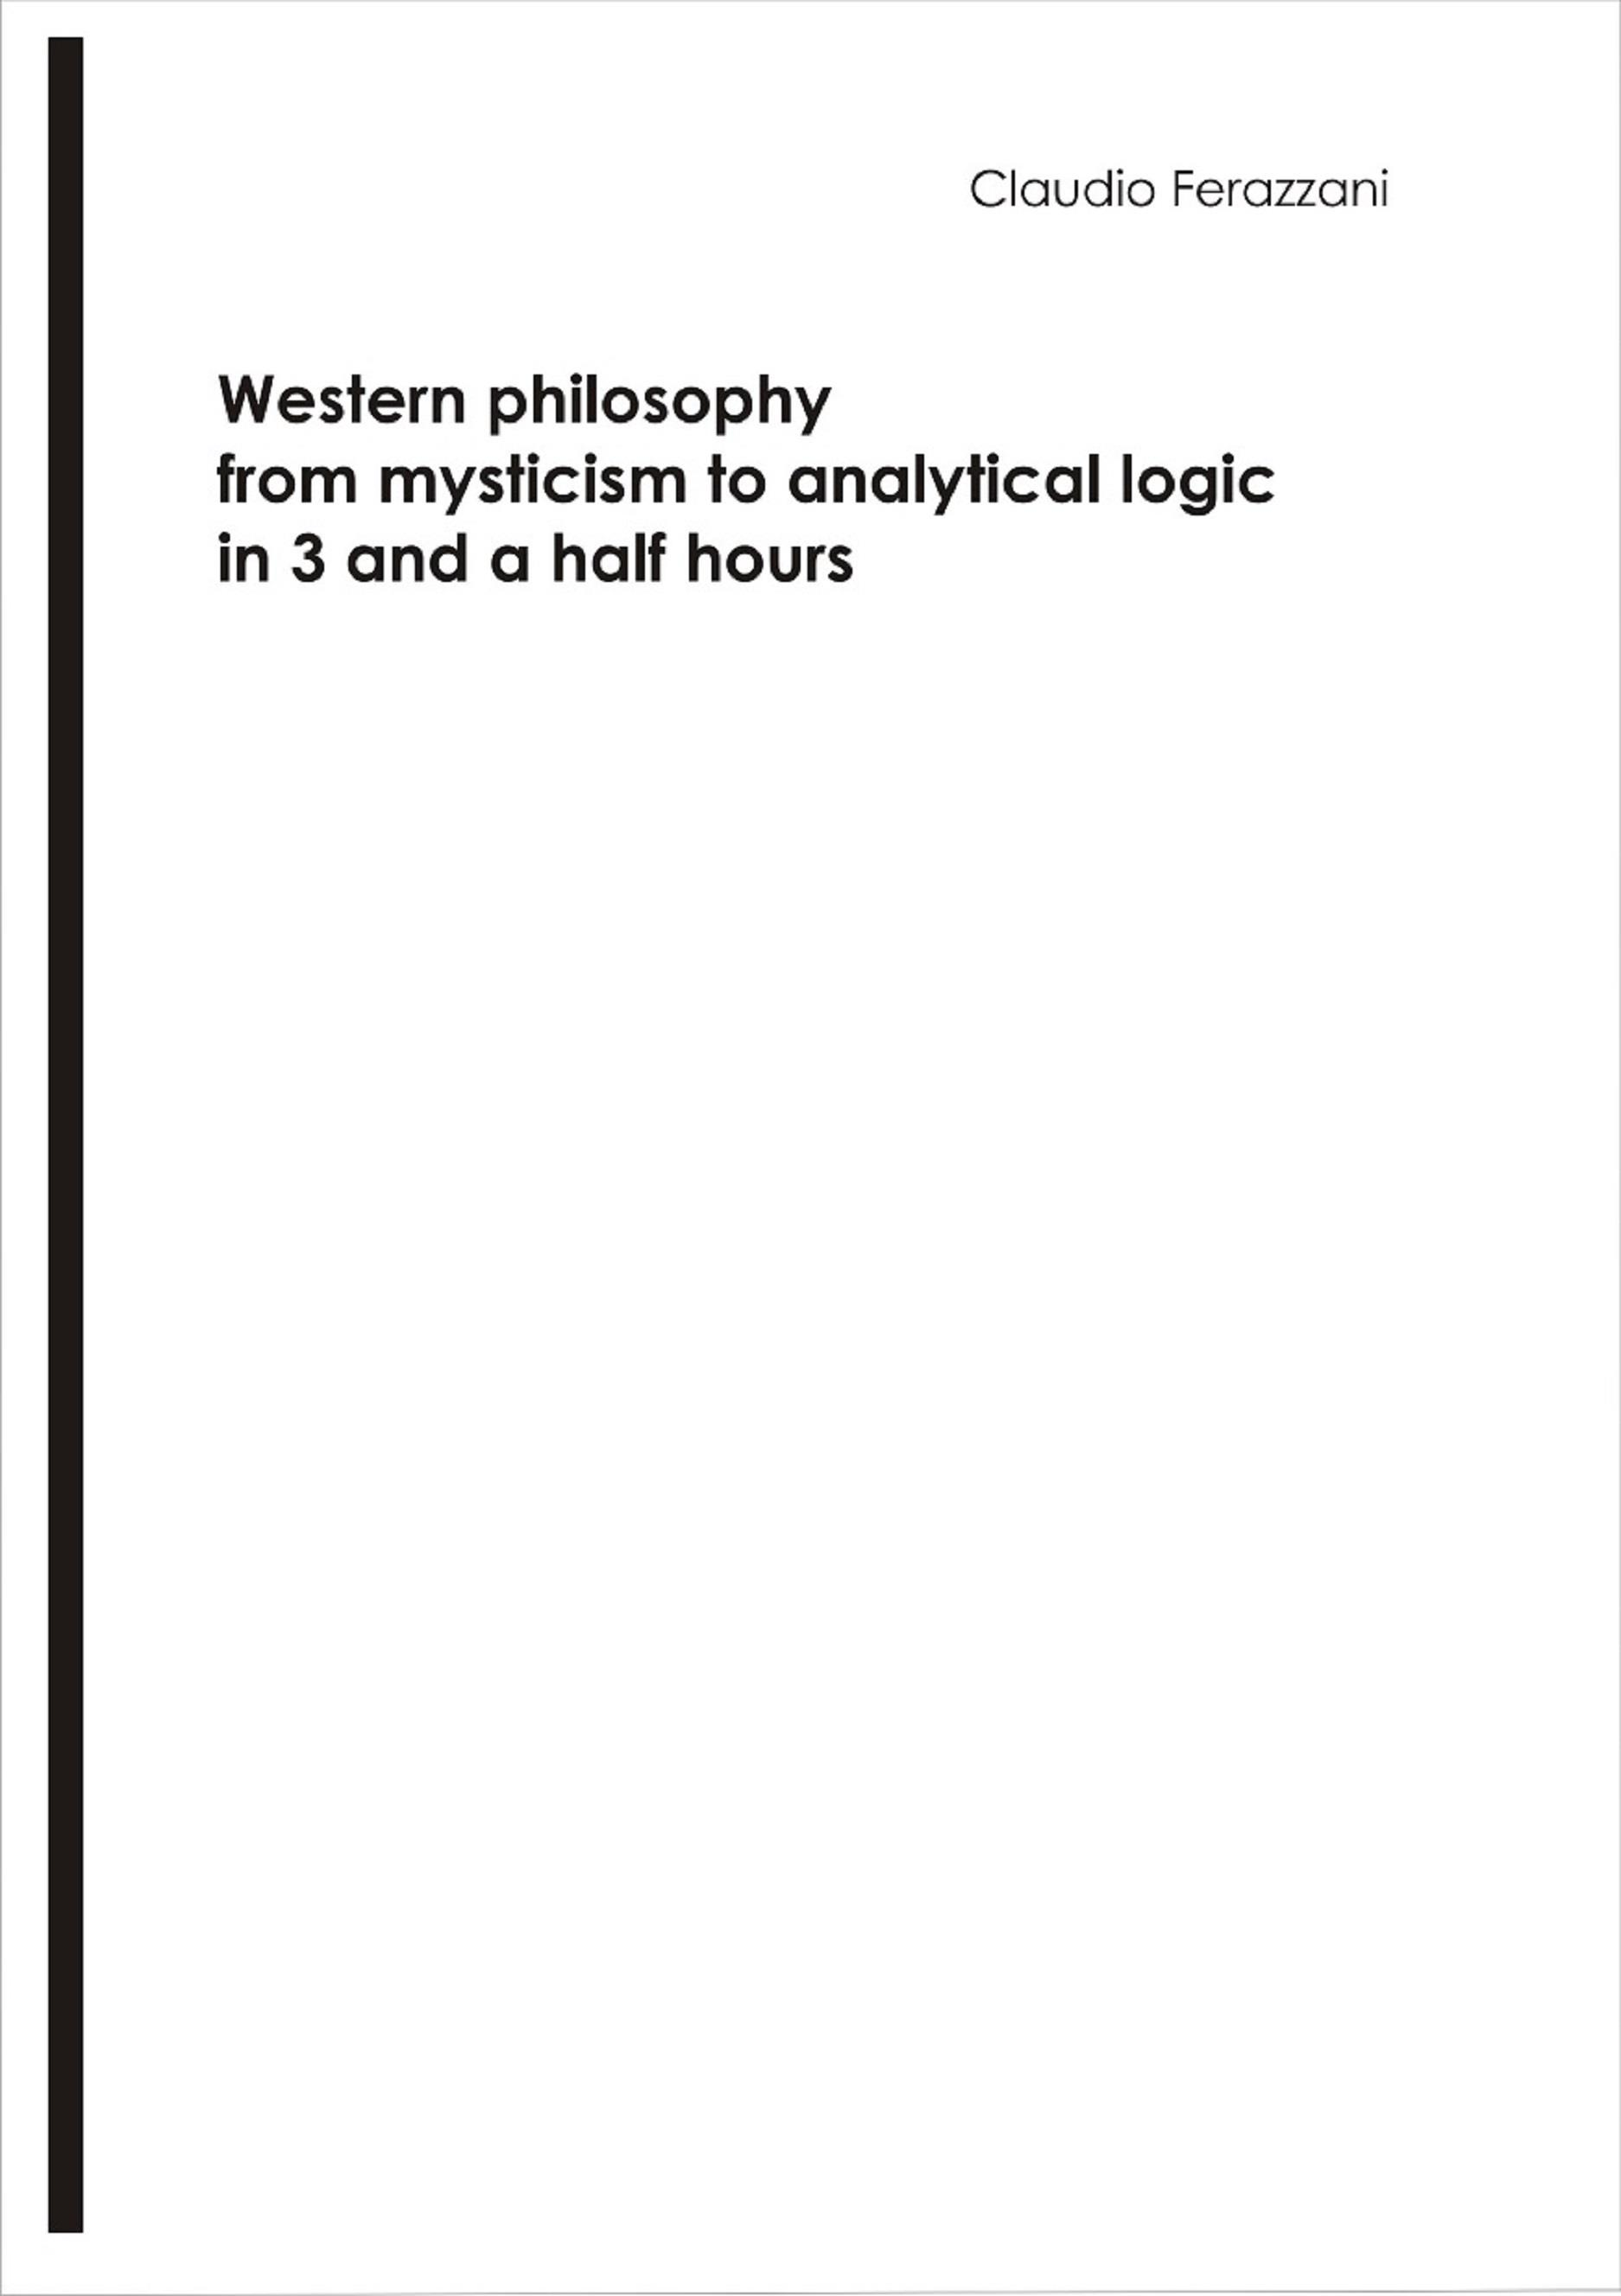 Western philosophy from mysticism to analytical logic in 3 and a half hours